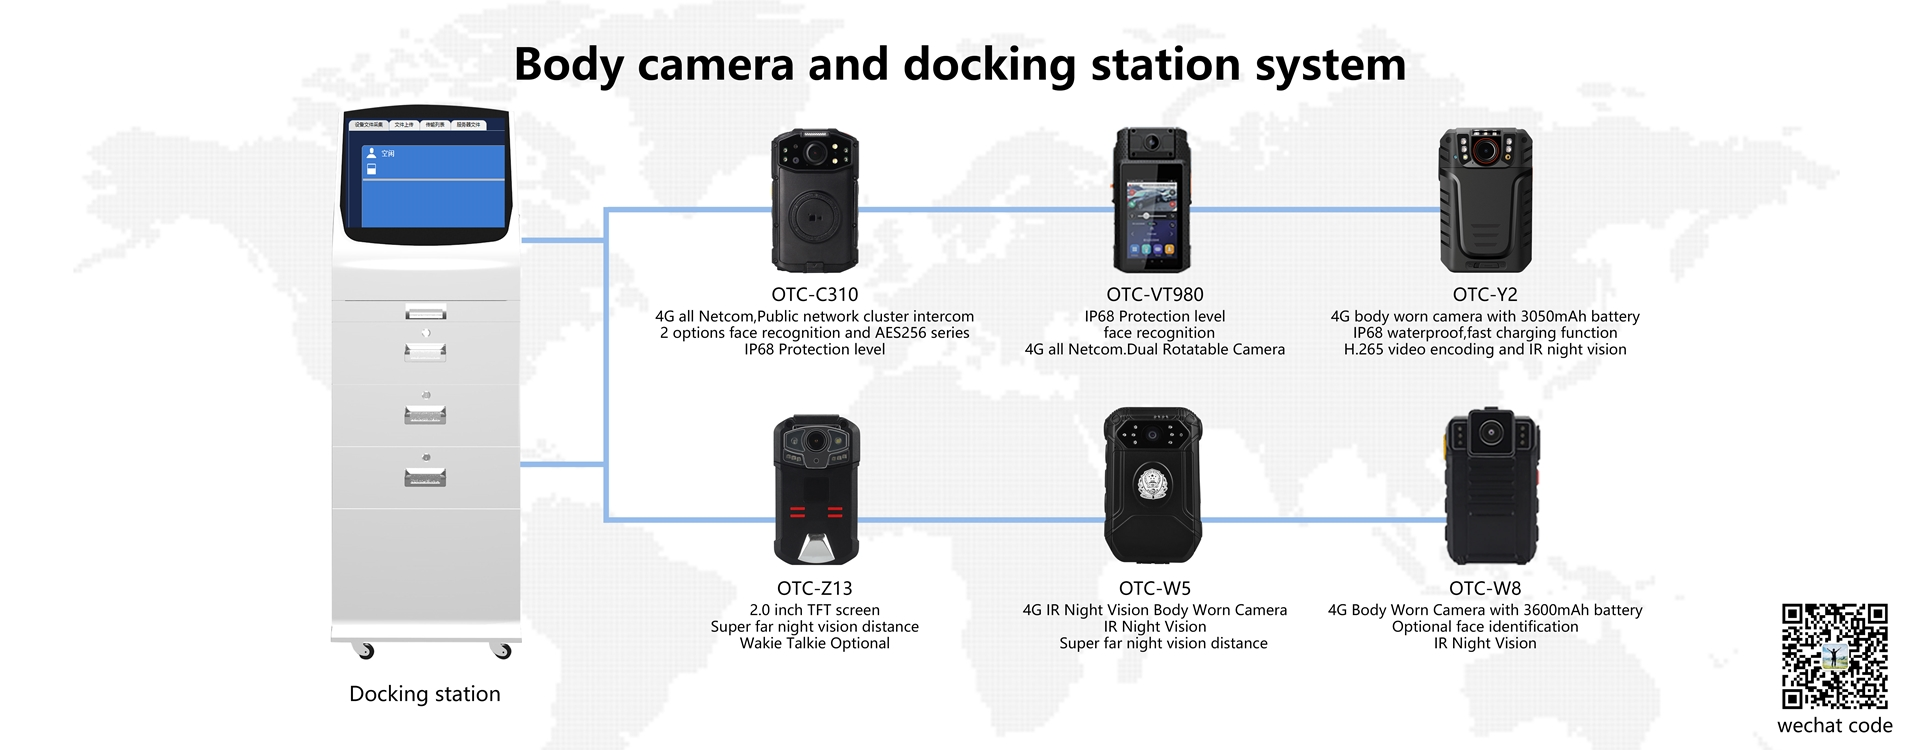 Body camera with docking station system